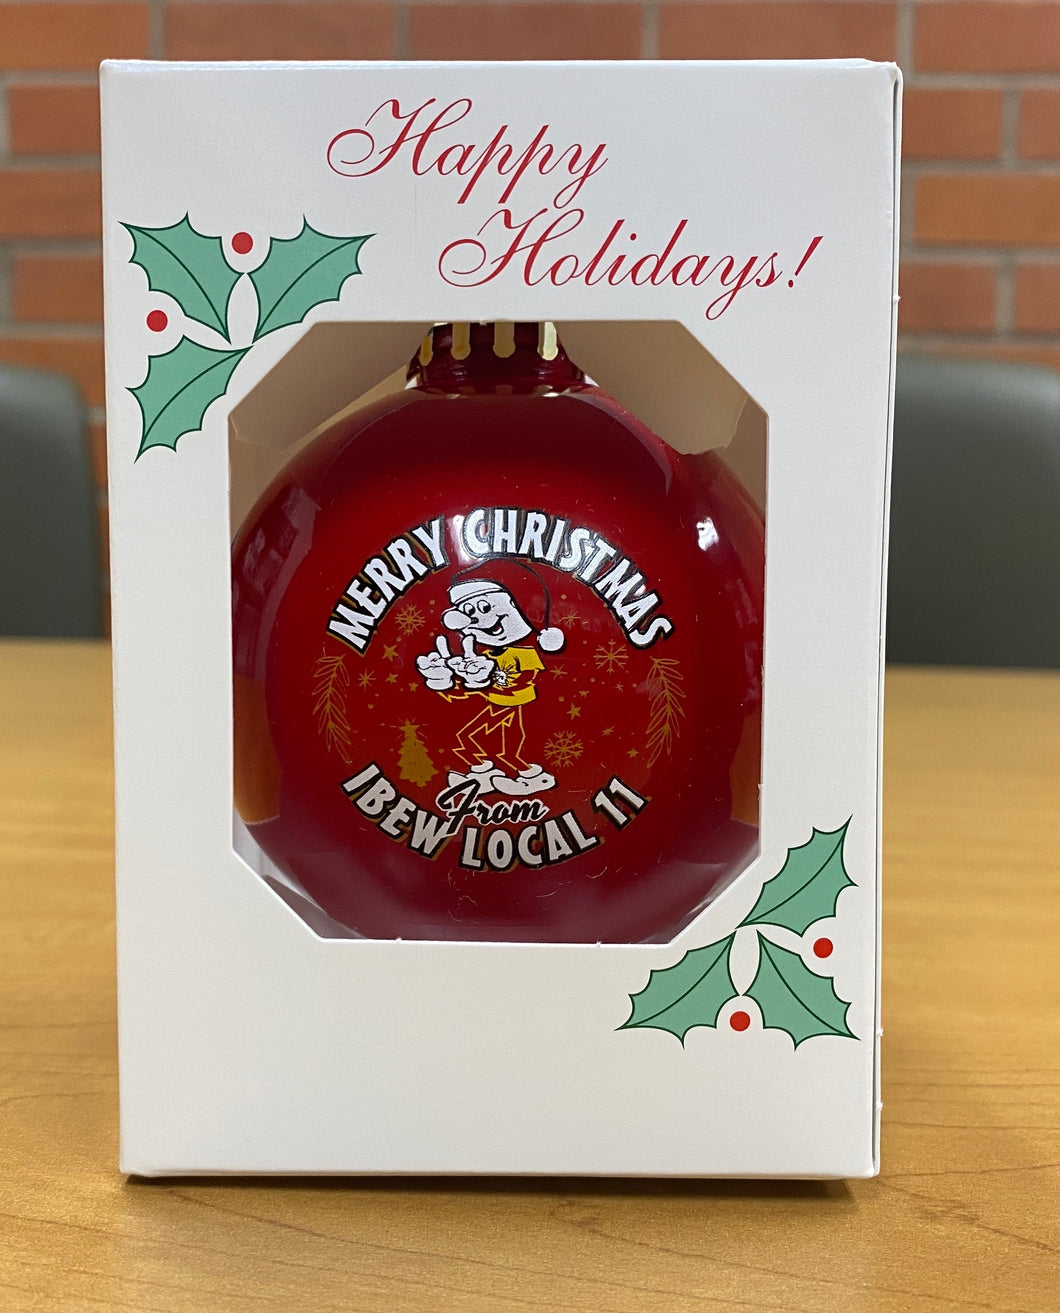 Reddy Kilowatt Christmas Ornament